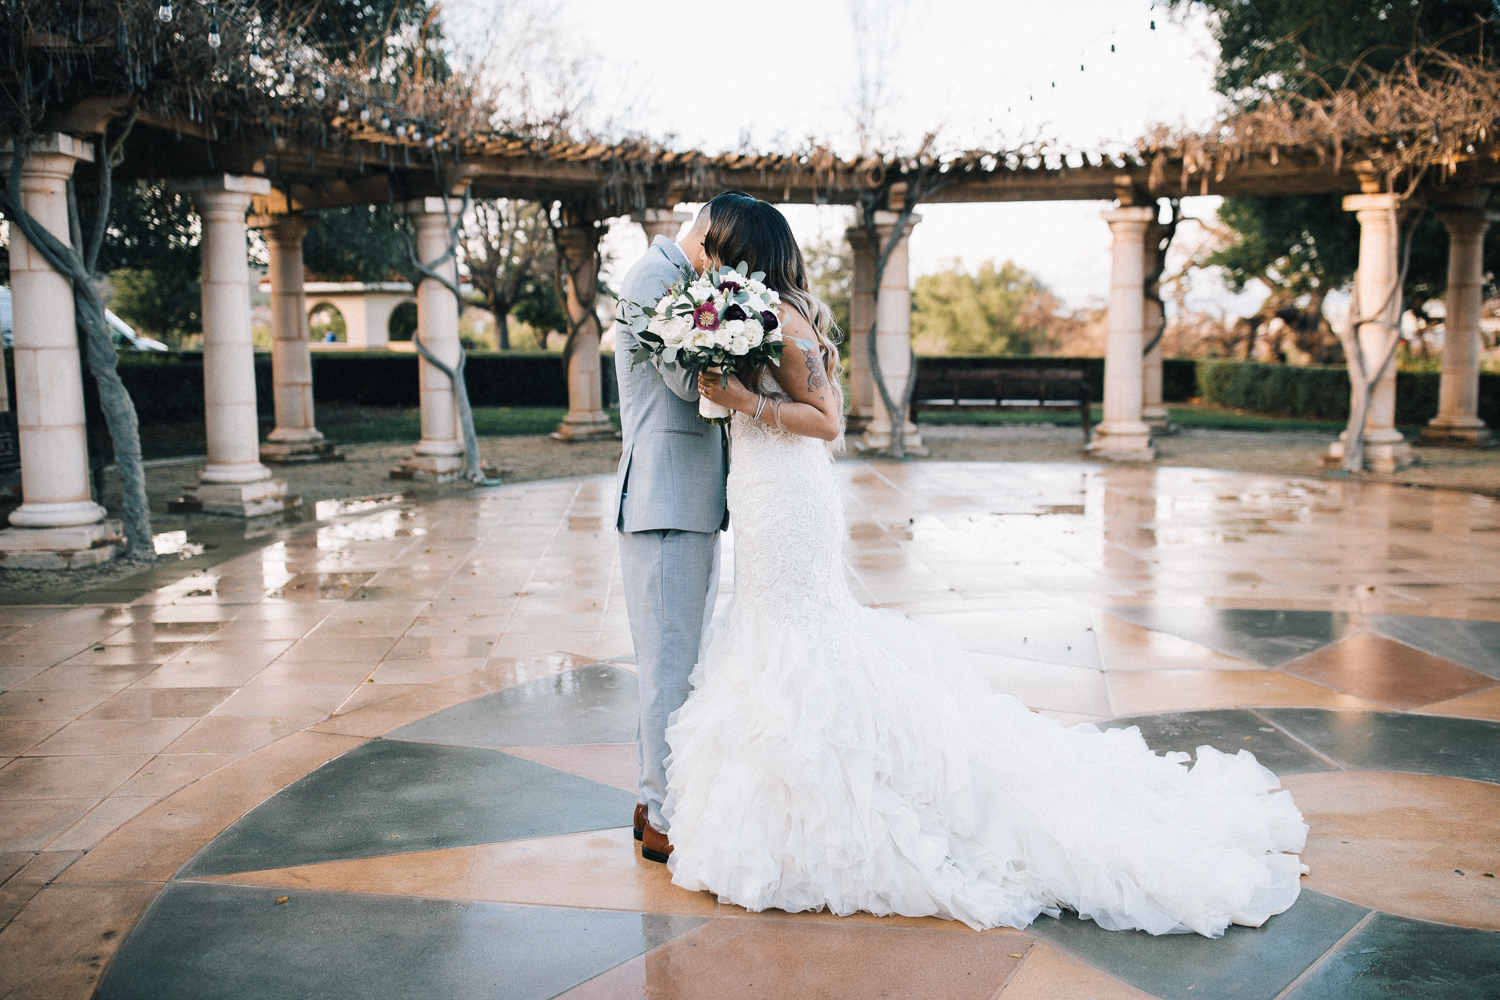 2019_01_ 202019.01.20 Santiago Wedding Blog Photos Edited For Web 0044.jpg